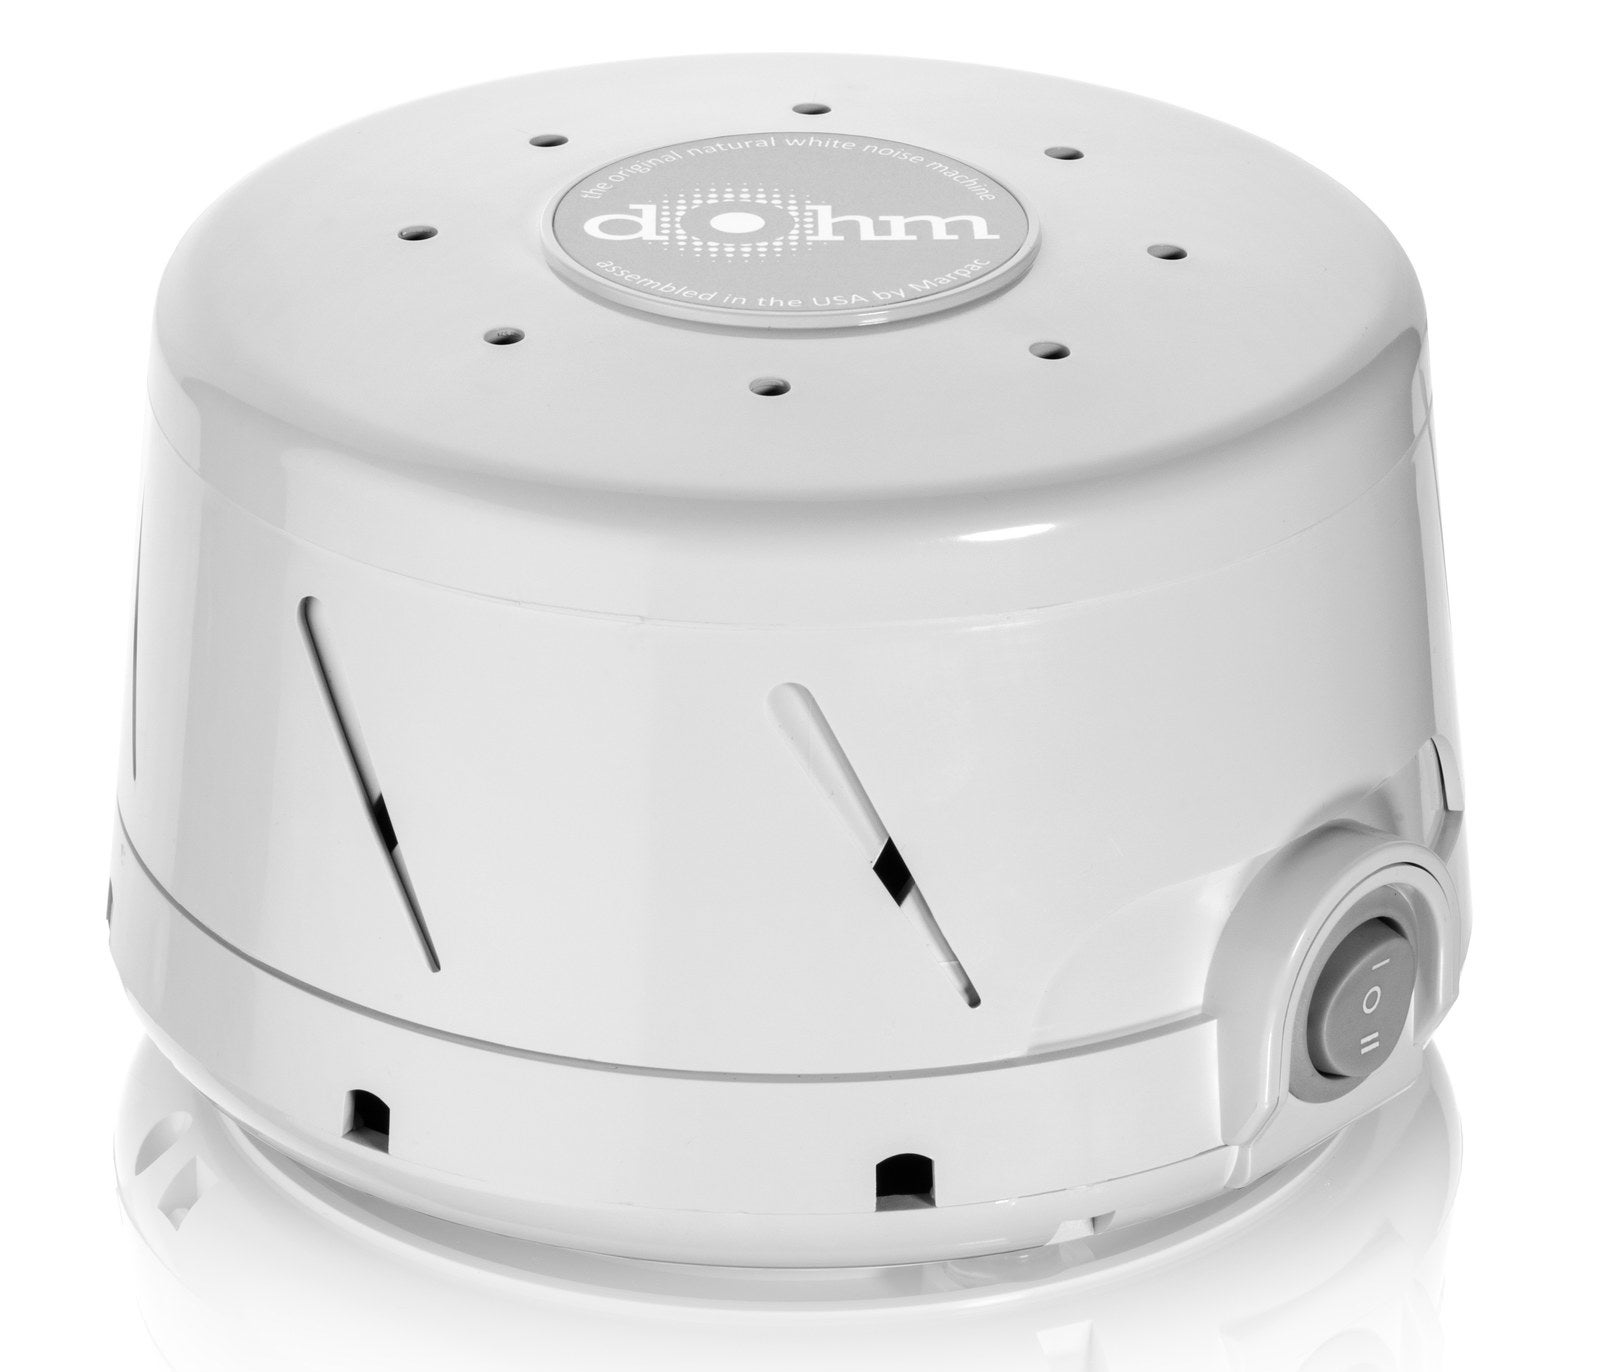 """It's just white noise, but it's like a mix between a fan and a storm. You can adjust the sound levels, too. It's a little pricey, but by far the best out there IMO."" —Mollie Guttman, Facebook""My Dohm white noise machine has literally saved my marriage."" —j11thGet it from Walmart for $44.95+ (available in three colors)."